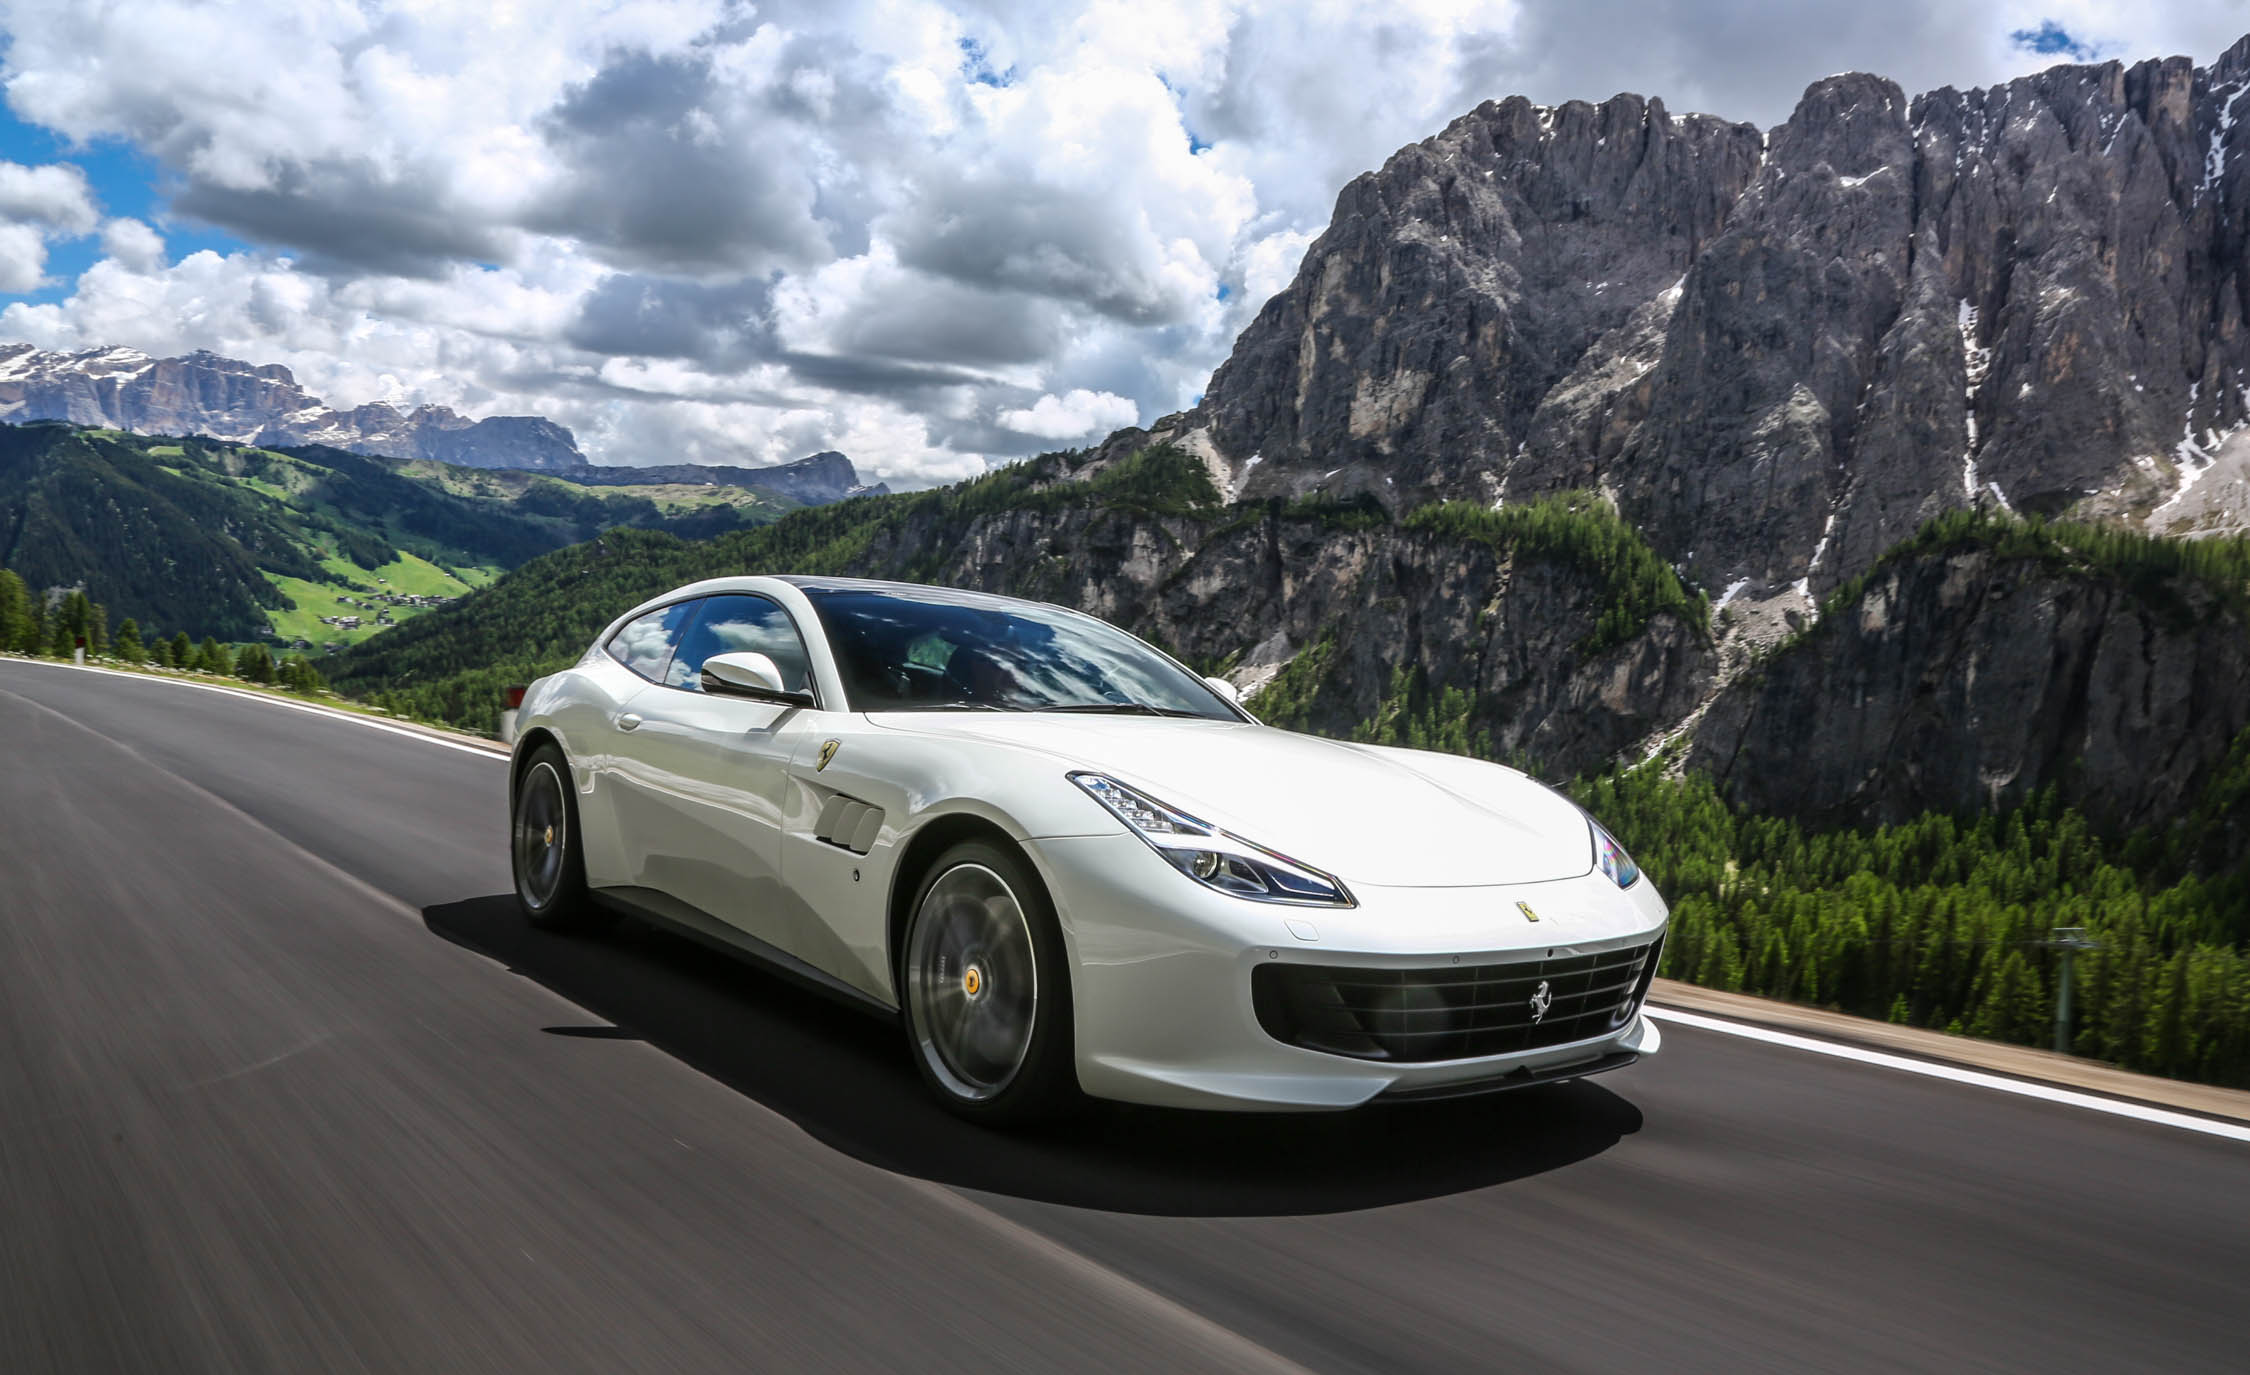 Featured Image of 2017 Ferrari GTC4Lusso